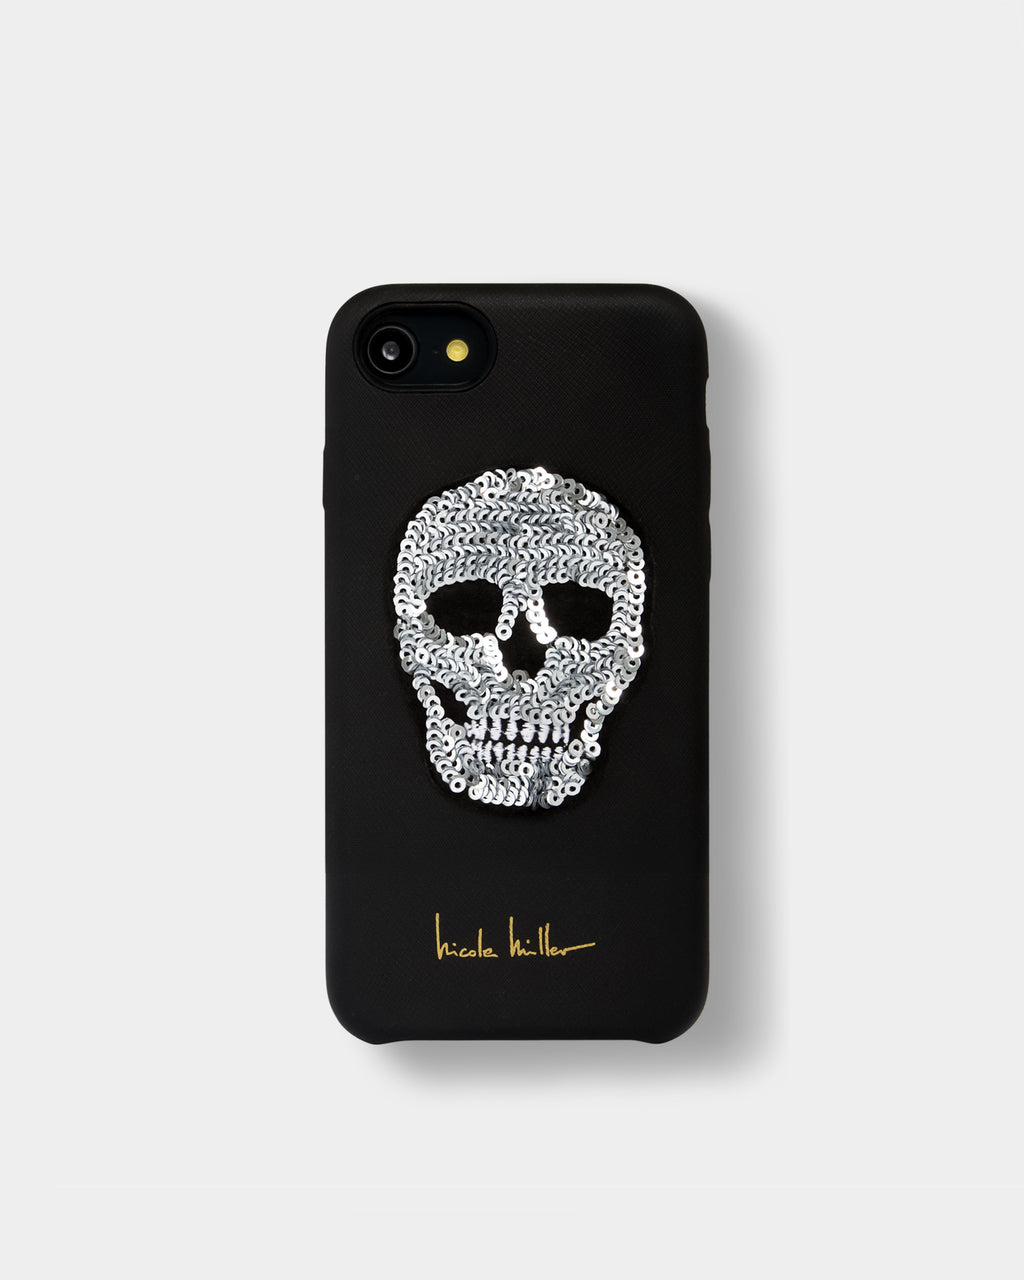 SSCSB01 - SEQUIN SKULL IPHONE 6/6S/7/8 CASE - accessories - fashion tech - Skull candy. This rebellious hard phone case is compatible with iPhone 6/6s/7/8 and is impact-resistant.